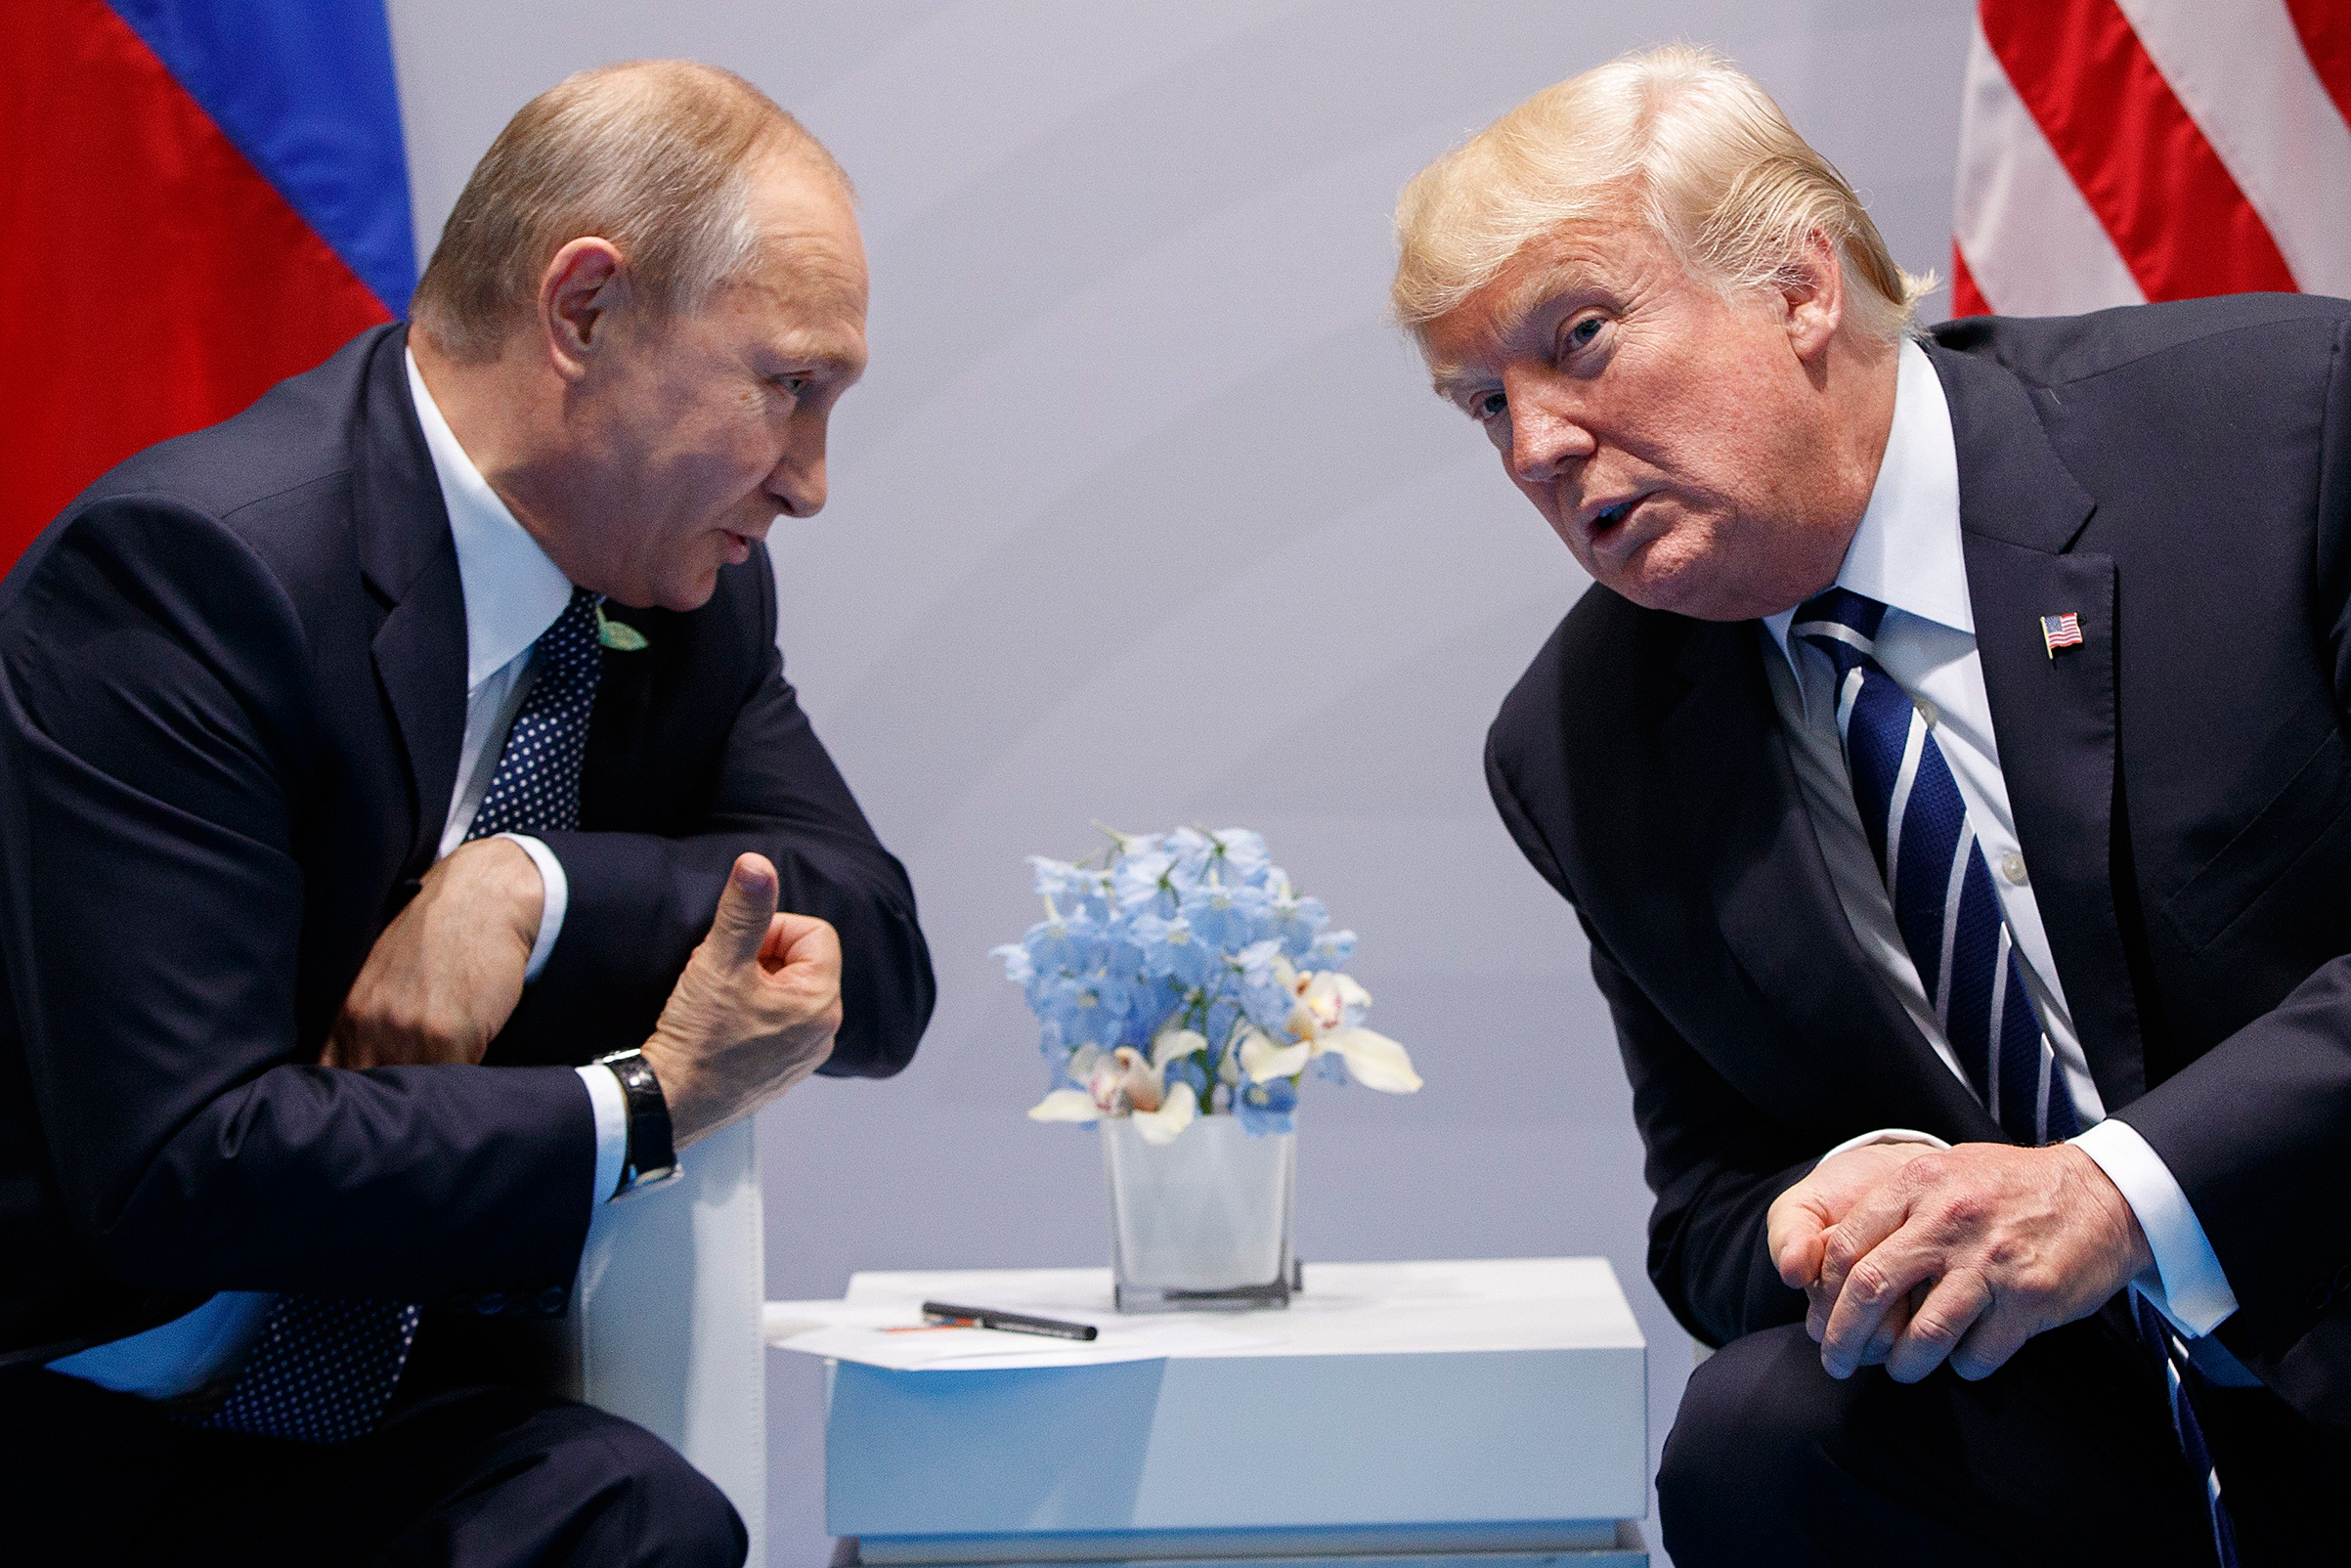 President Trump met with Putin not once but twice at the G-20 summit in Hamburg in July. The undisclosed second conversation took place during a dinner and without any other U.S. officials present.